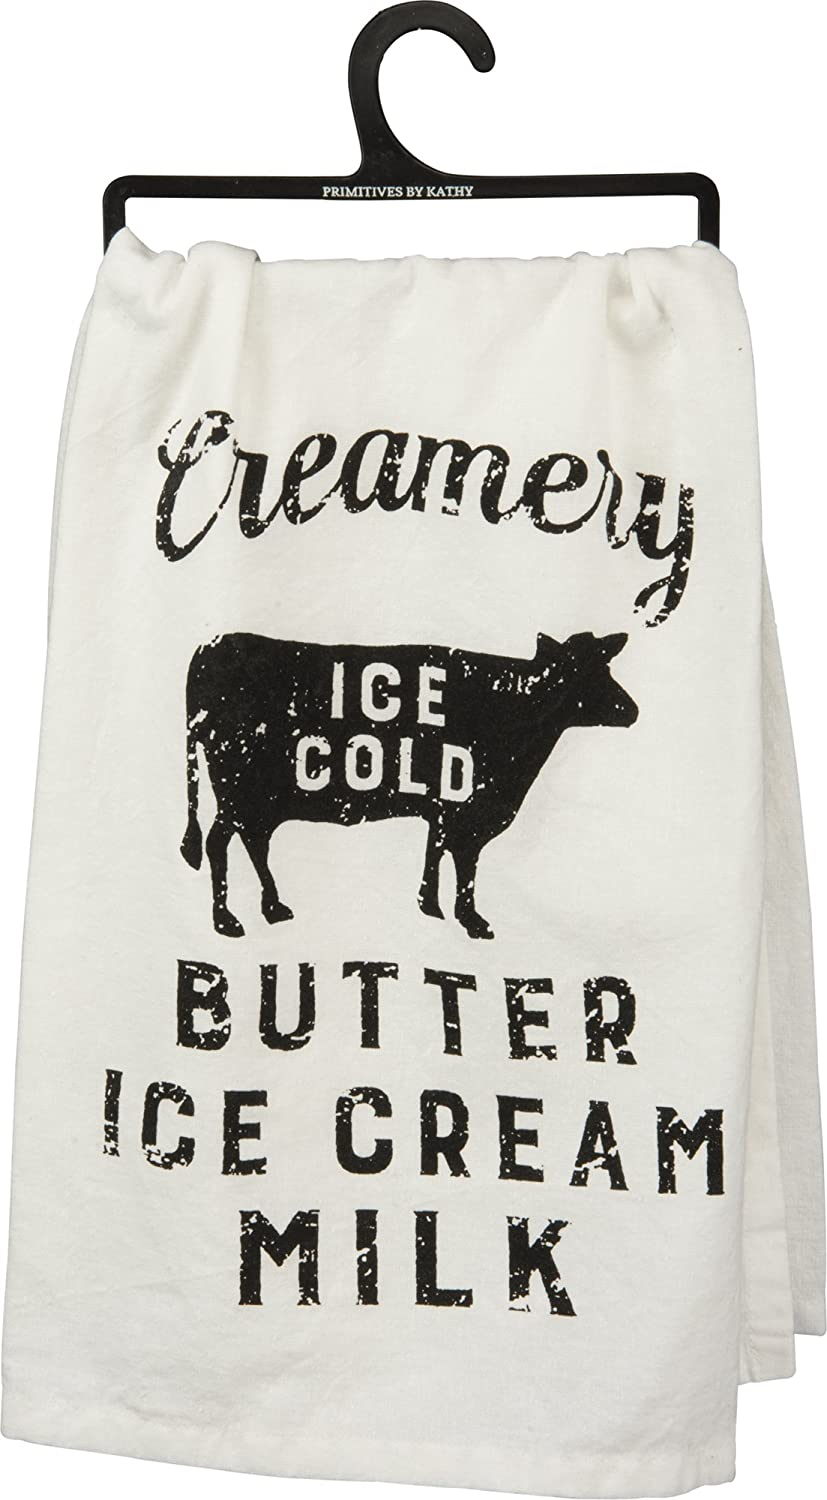 creamery ice cold butter ice cream milk farmhouse hand towel